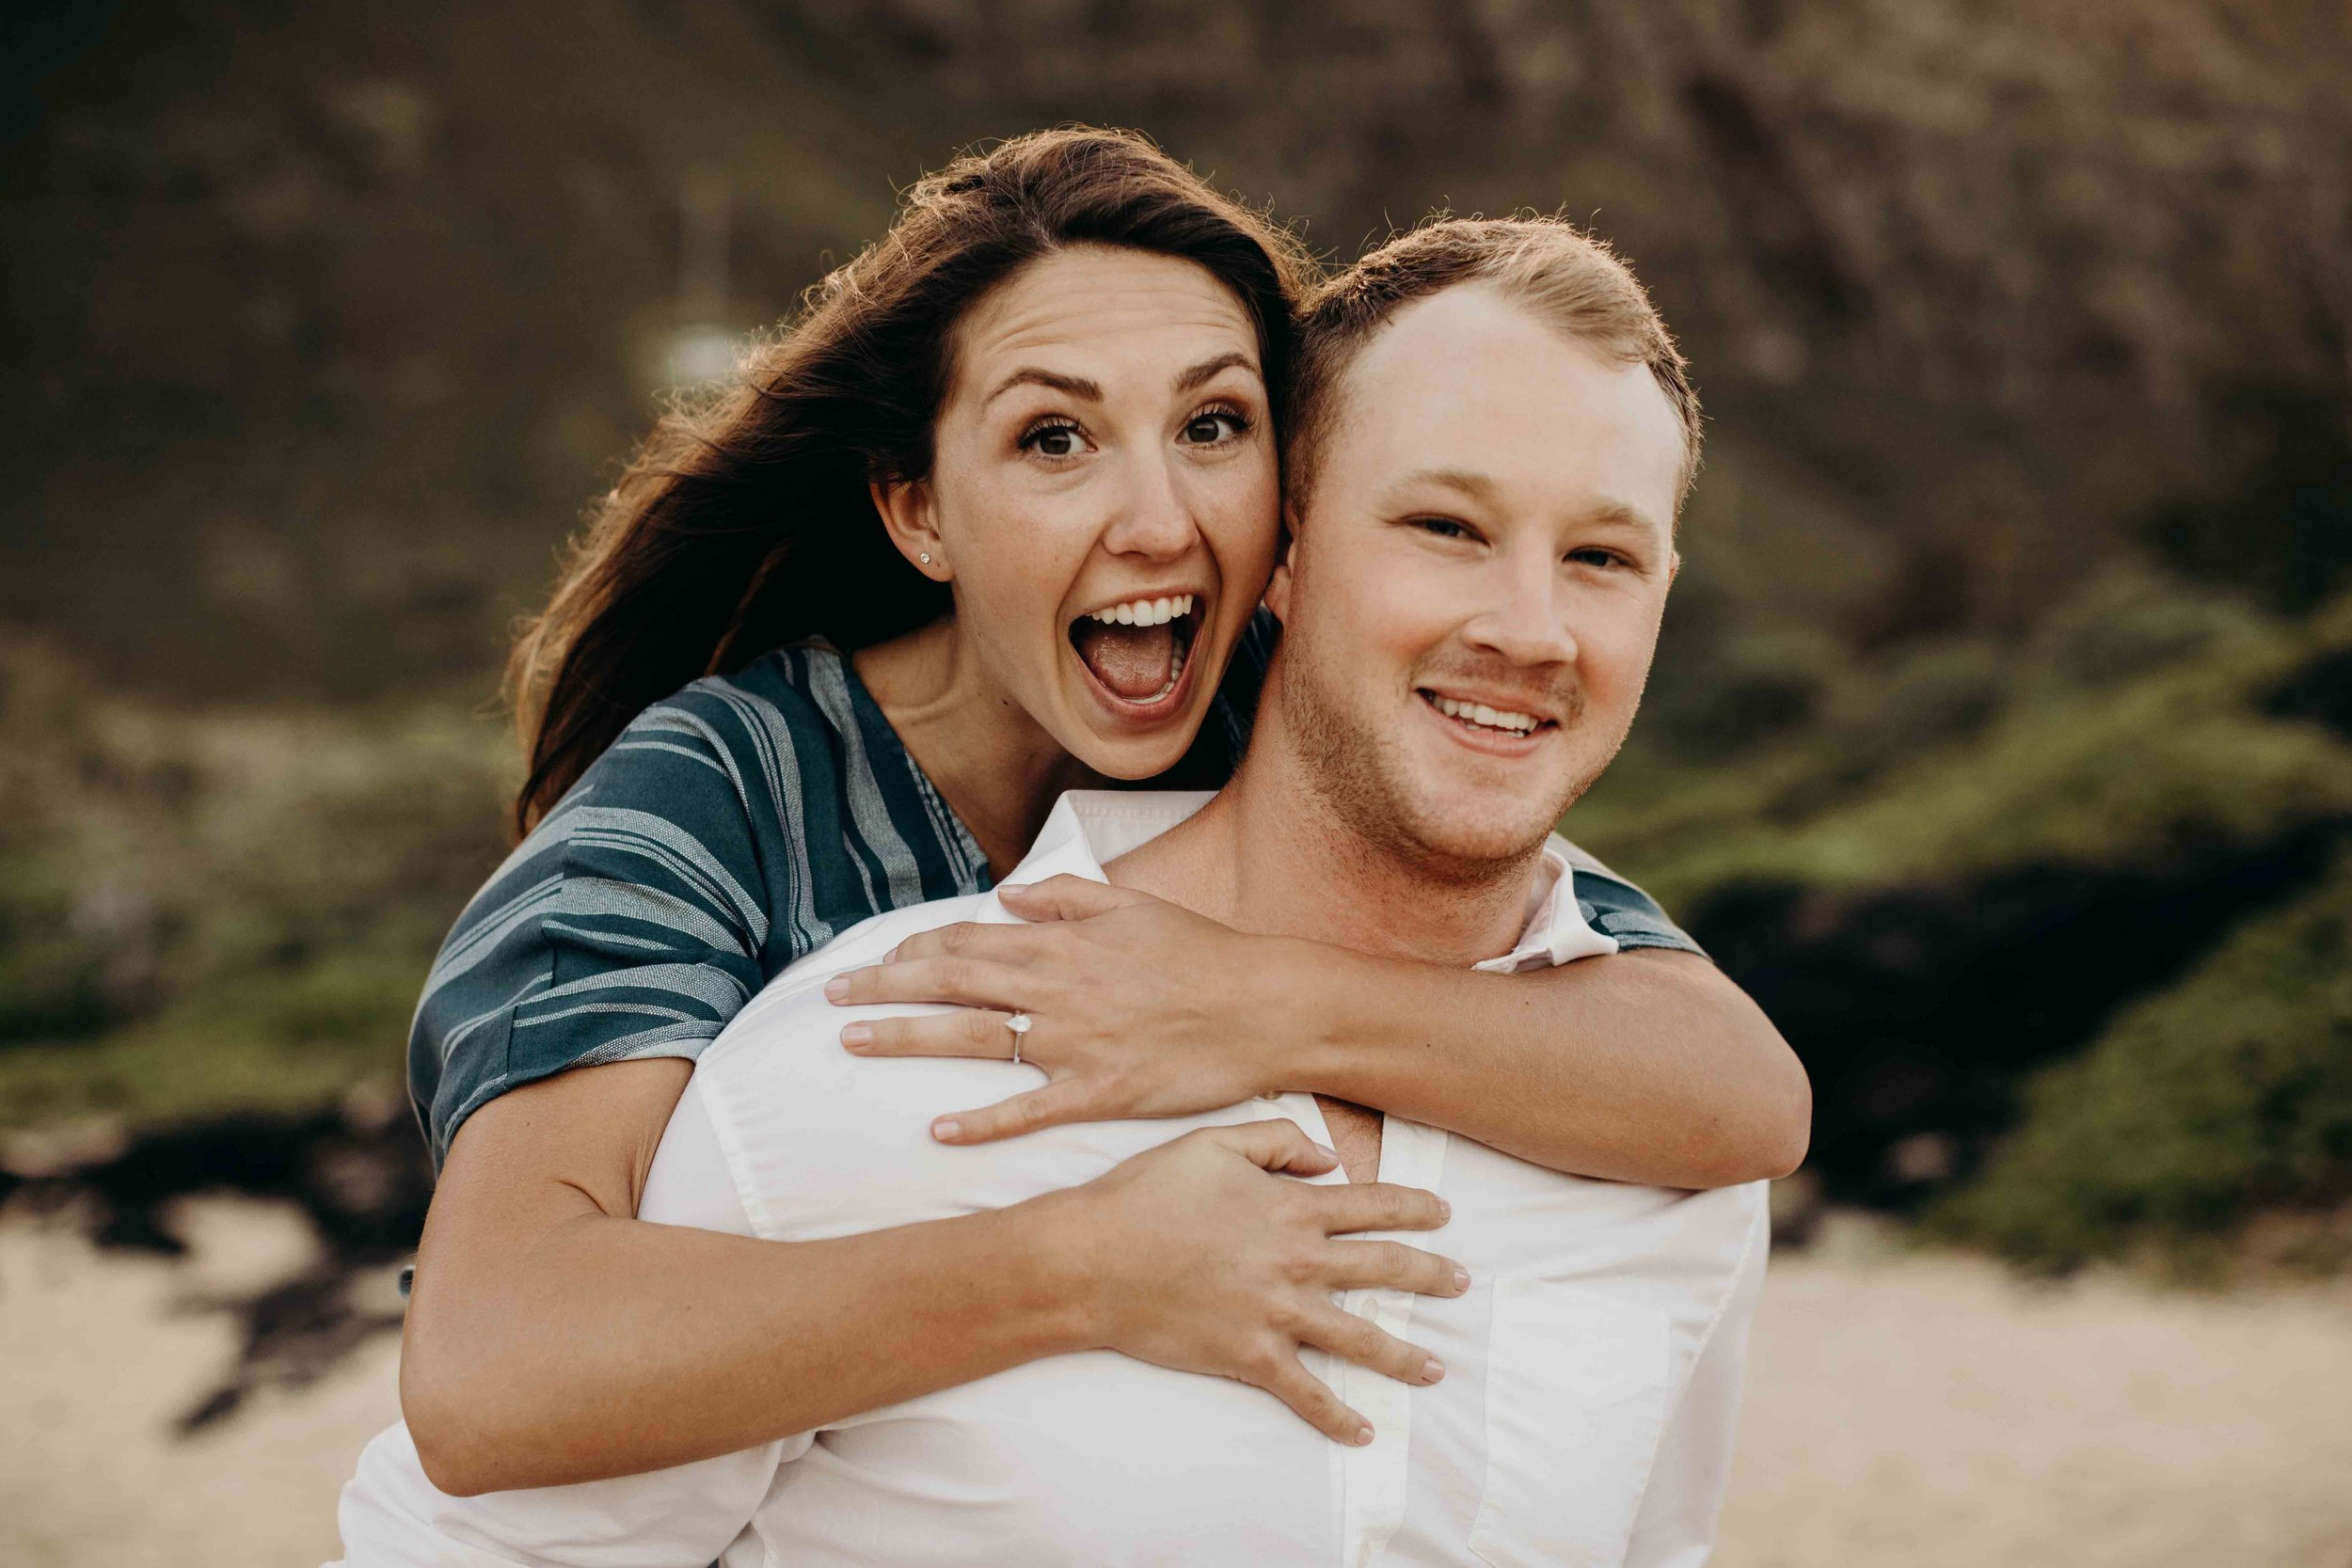 hawaii-engagement-photographer-keani-bakula-makapuu-beach-15.jpg